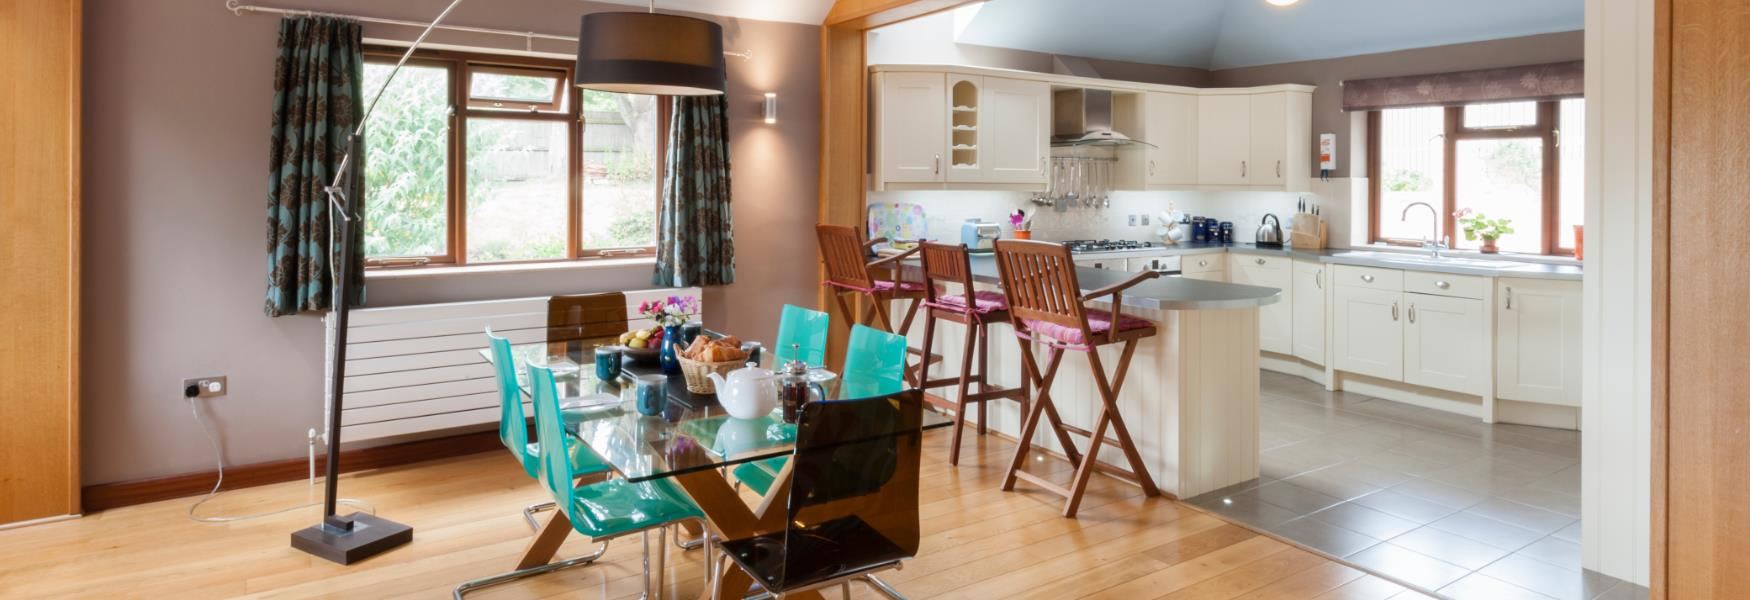 Big Kitchen and Dining Area in Holiday Cottage Self Catering in the New Forest